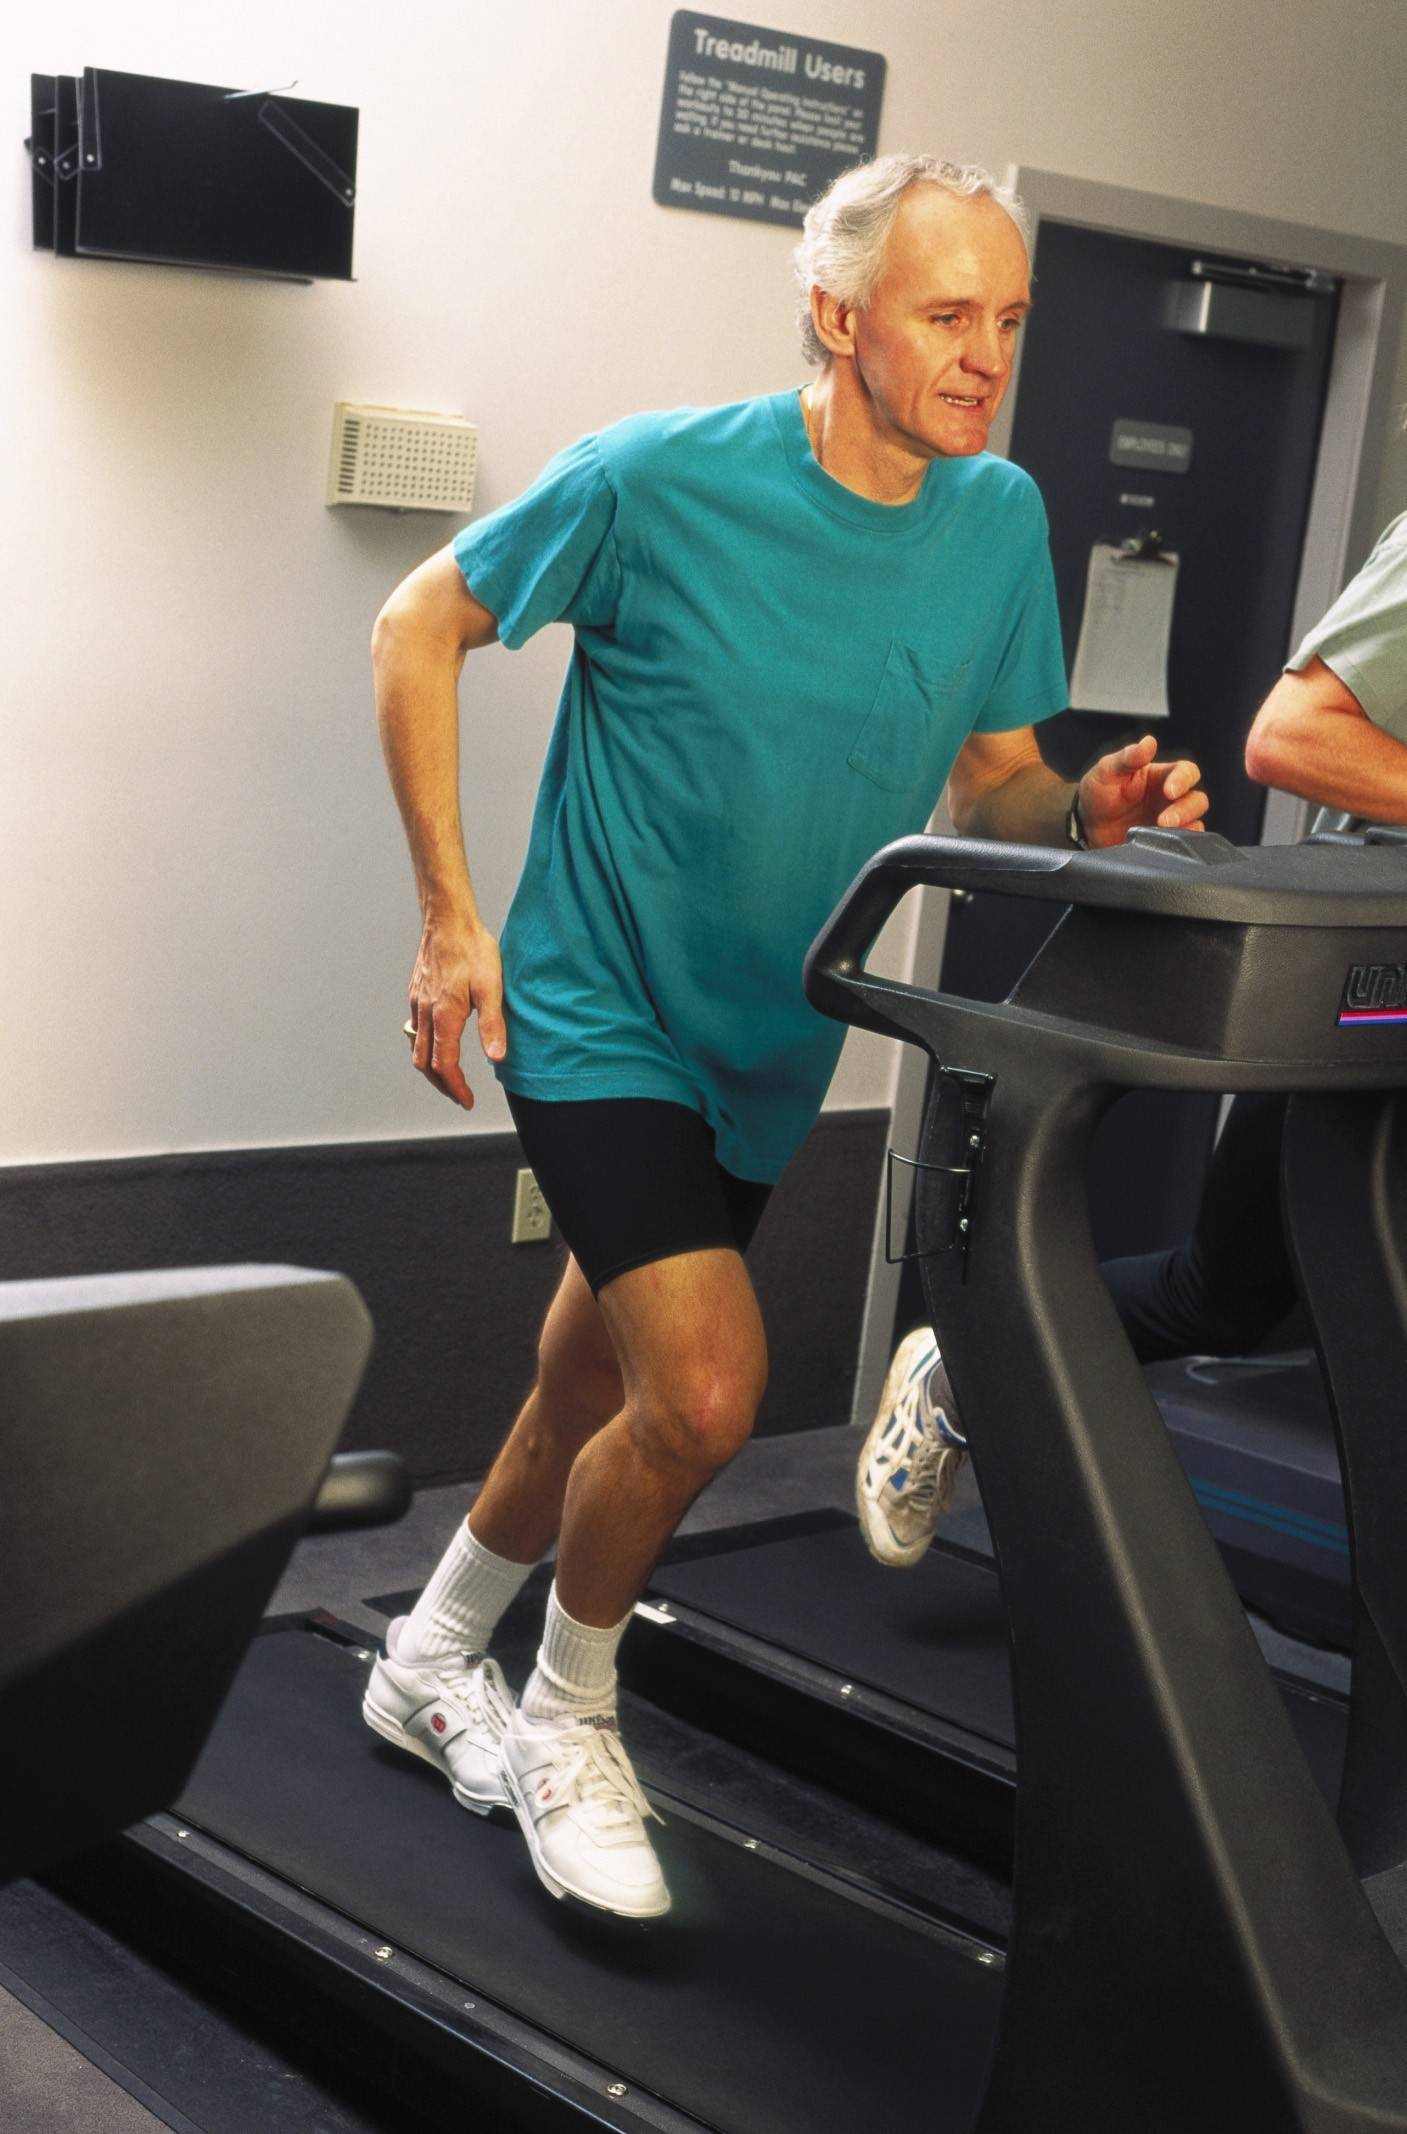 If your running is slowing down as you get older, it may have more to do with biomechanics than your age.